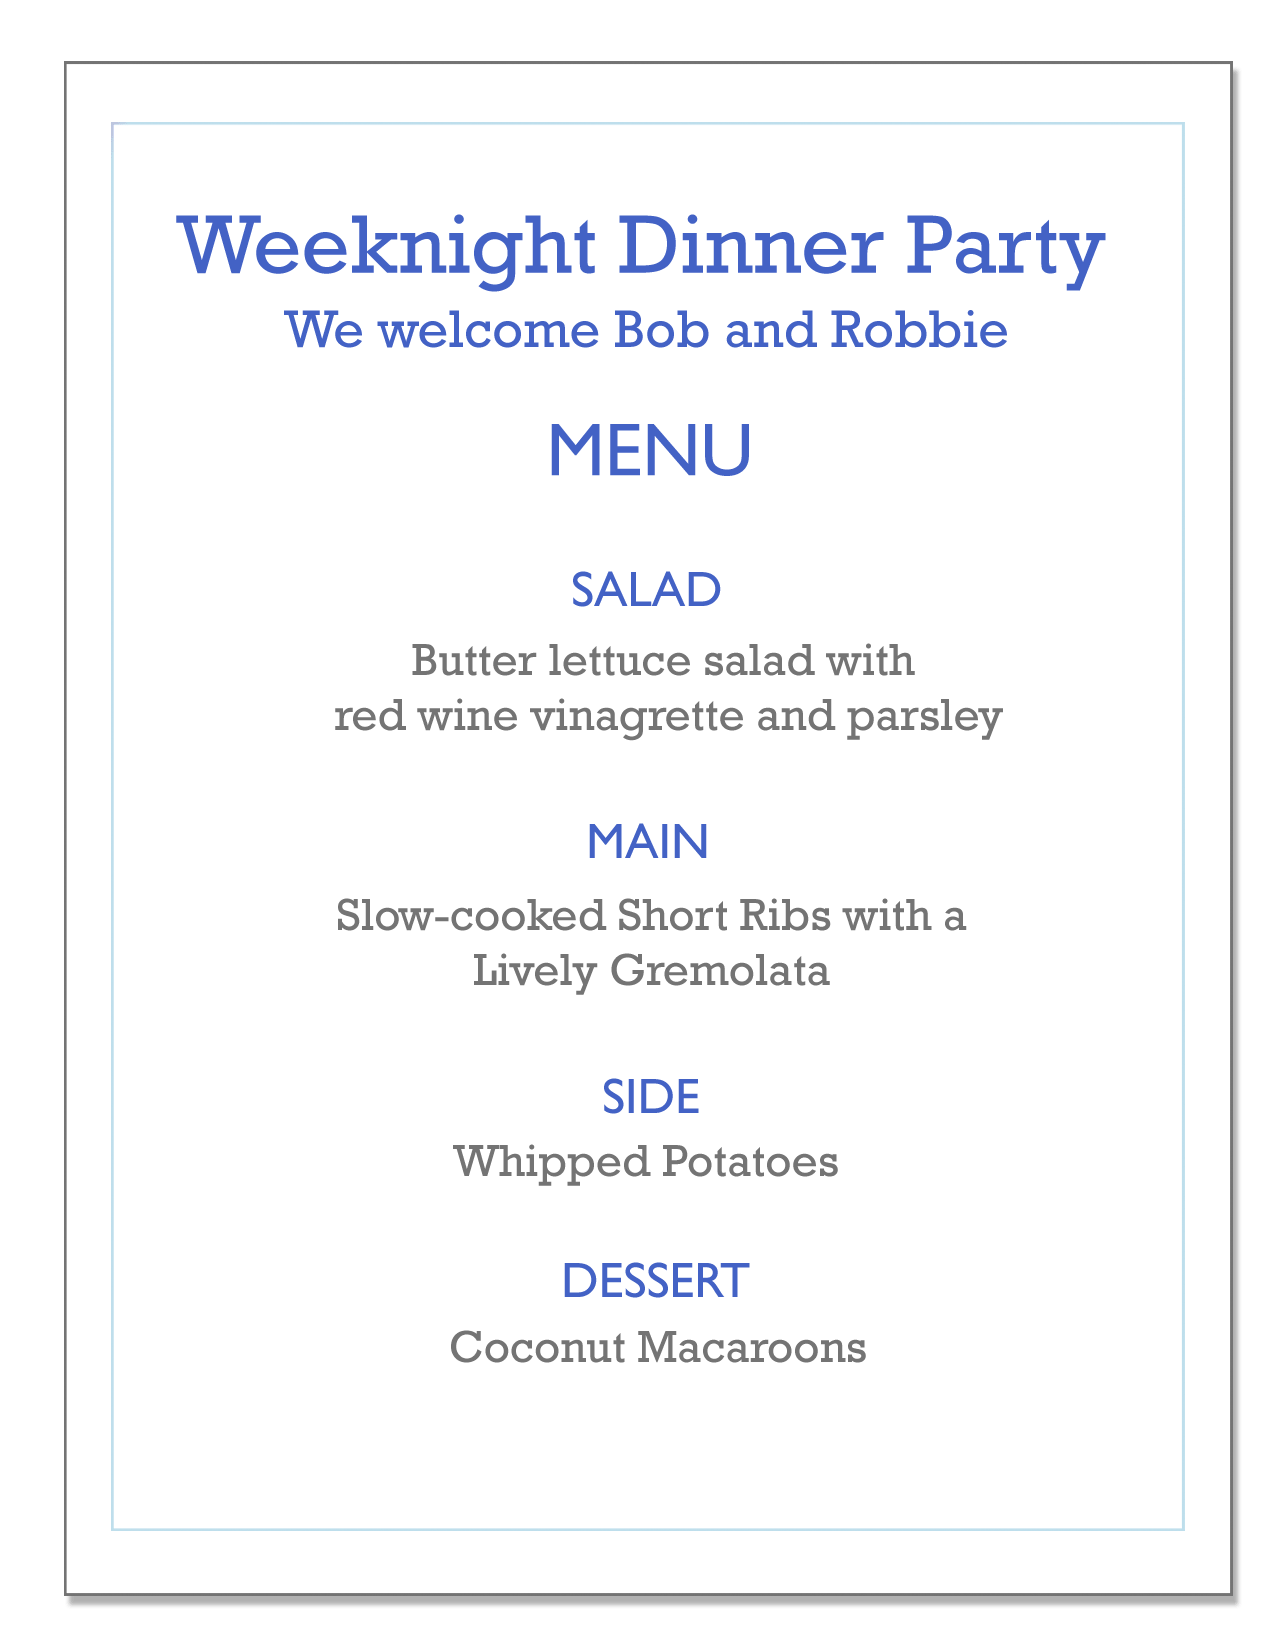 21 Diner Menu Tips Weeknight Dinner Party Week Hjentertains